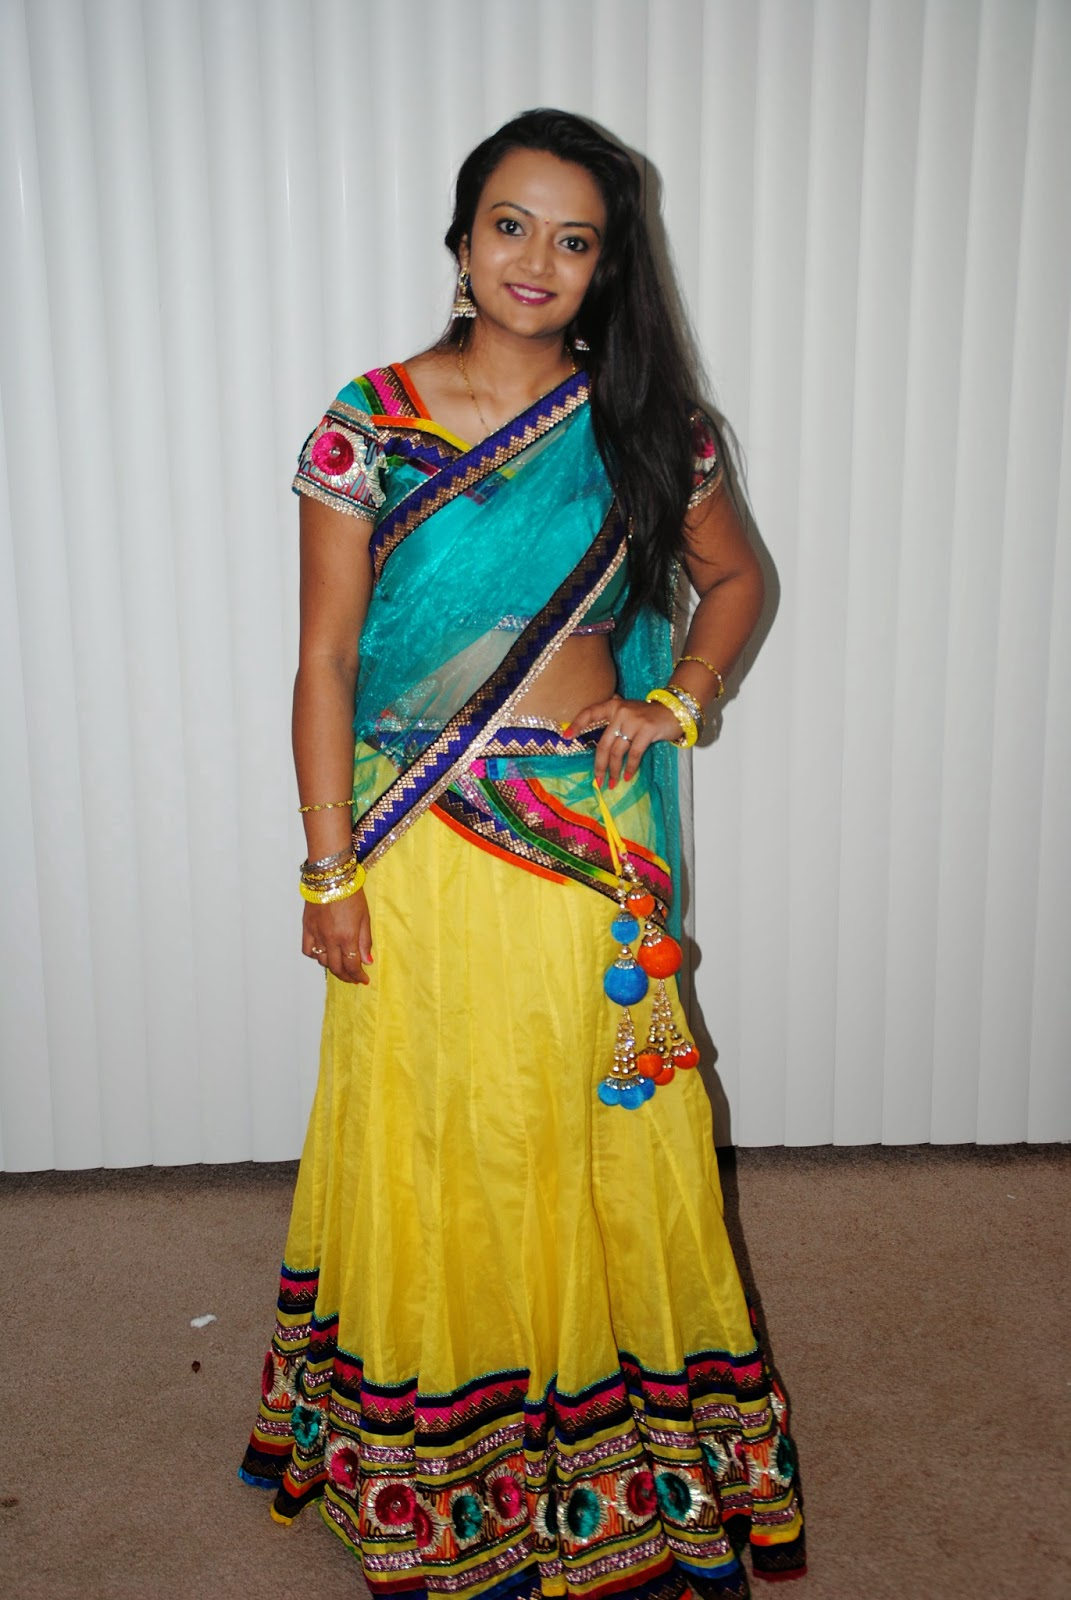 Indian bridal wear, beautiful indian girl, authentic indian wear, designer lehenga , Seattle indian store , yellow and green combination dress, indian-usa fashion blogger